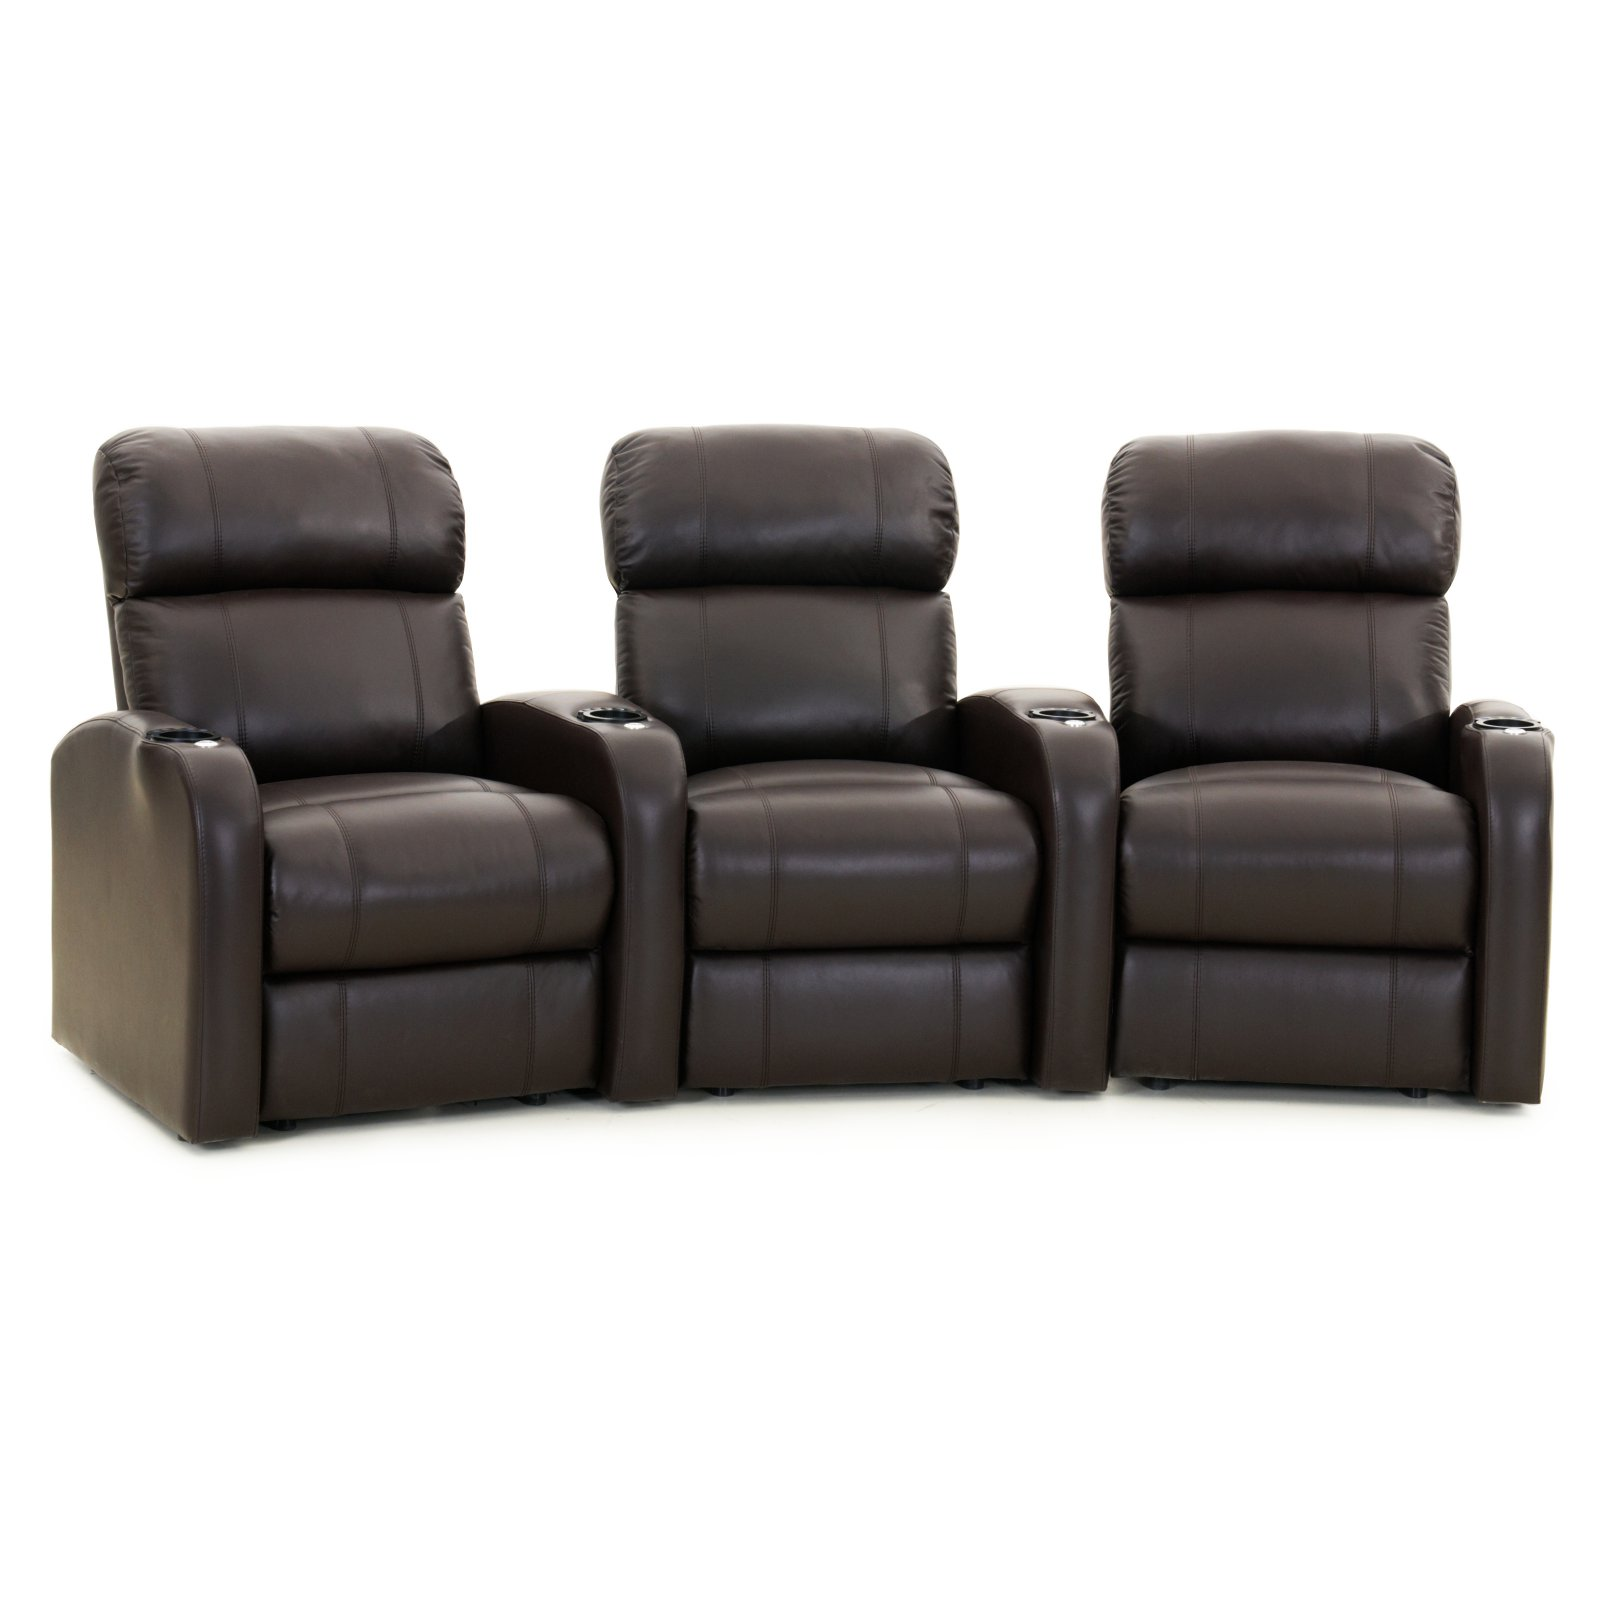 Octane Diesel XS950 3 Seater Curved Home Theater Seating